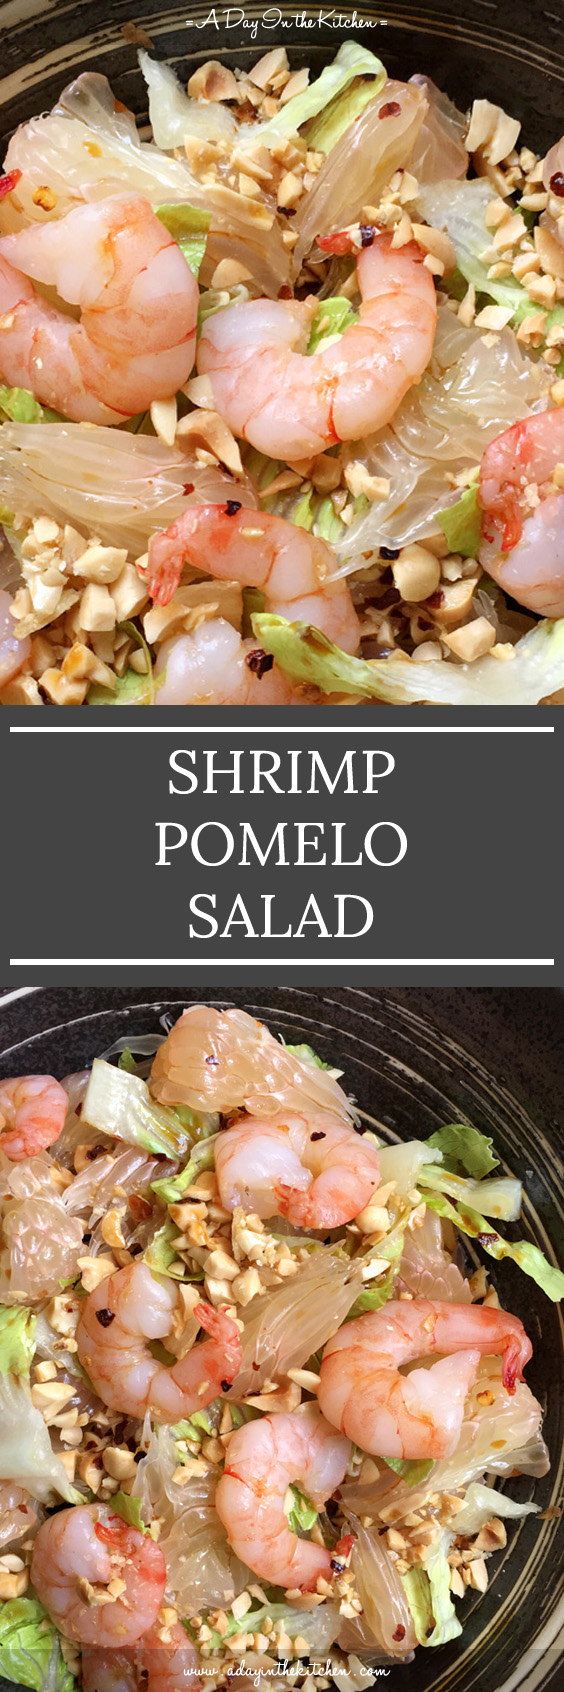 Tender shrimp, juicy pomelo wedges, crunchy peanuts, and a spicy, tangy, sweet dressing combine to make the perfect salad. #pomelosalad #shrimppomelosalad #pomelo #shrimp #thaisalads